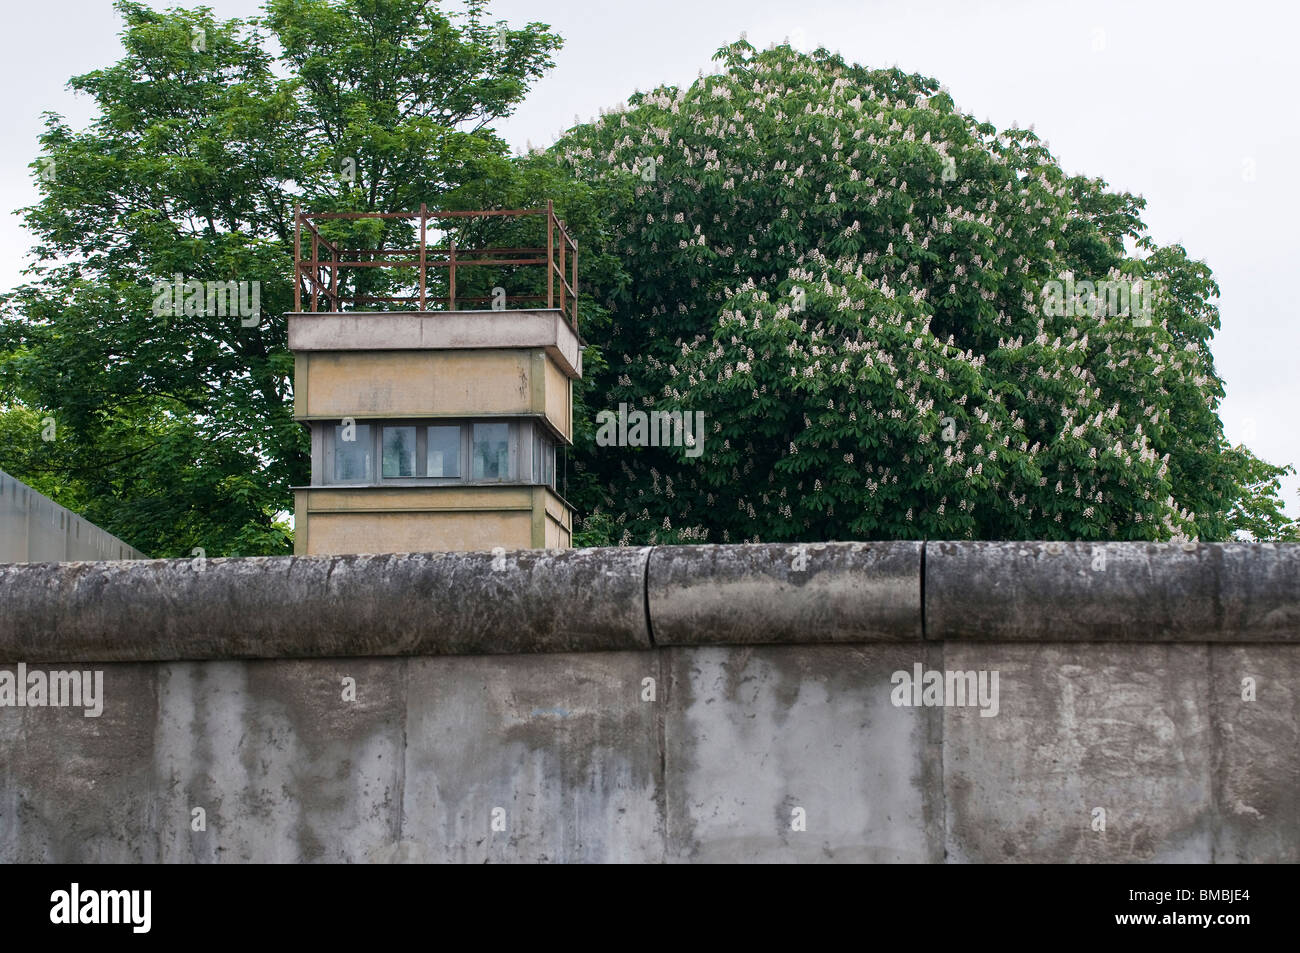 Former guard tower at the Berlin Wall Memorial in the Bernauer Strasse, Berlin, Germany - Stock Image